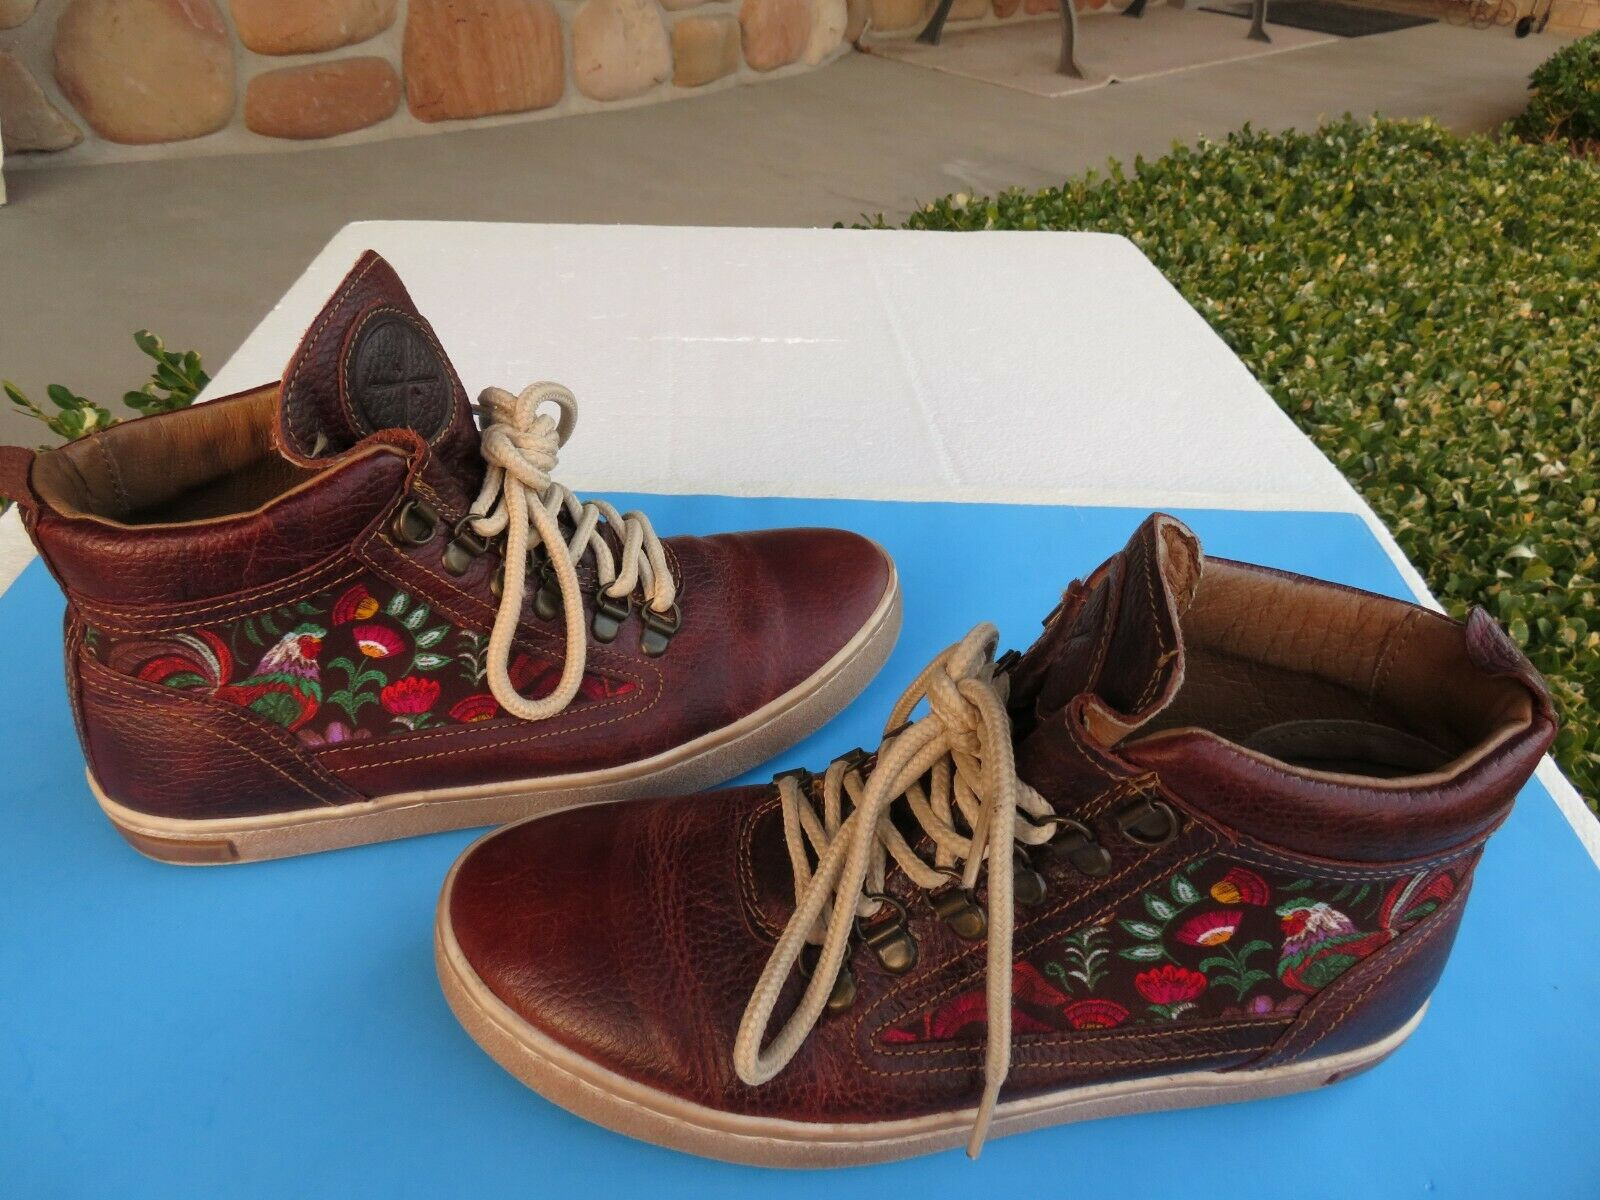 Inkkas Camping Boots Floral Rooster Textile/ Brown Leather Lace Up Booties Sz 8